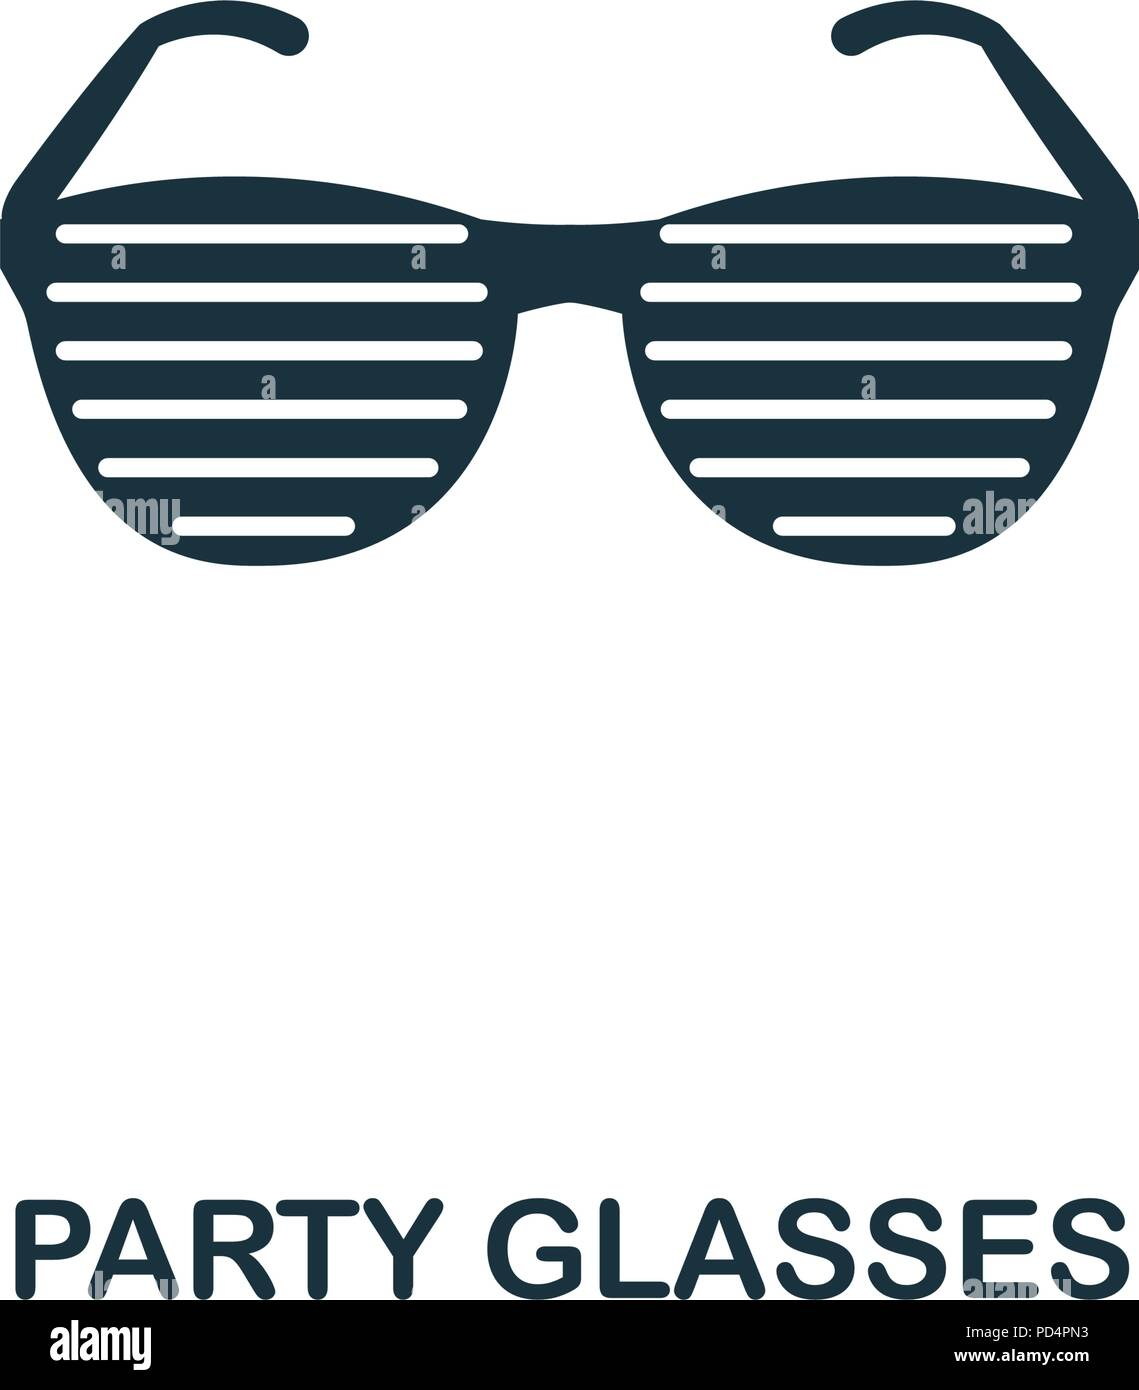 Party Glasses Creative Icon Simple Element Illustration Party